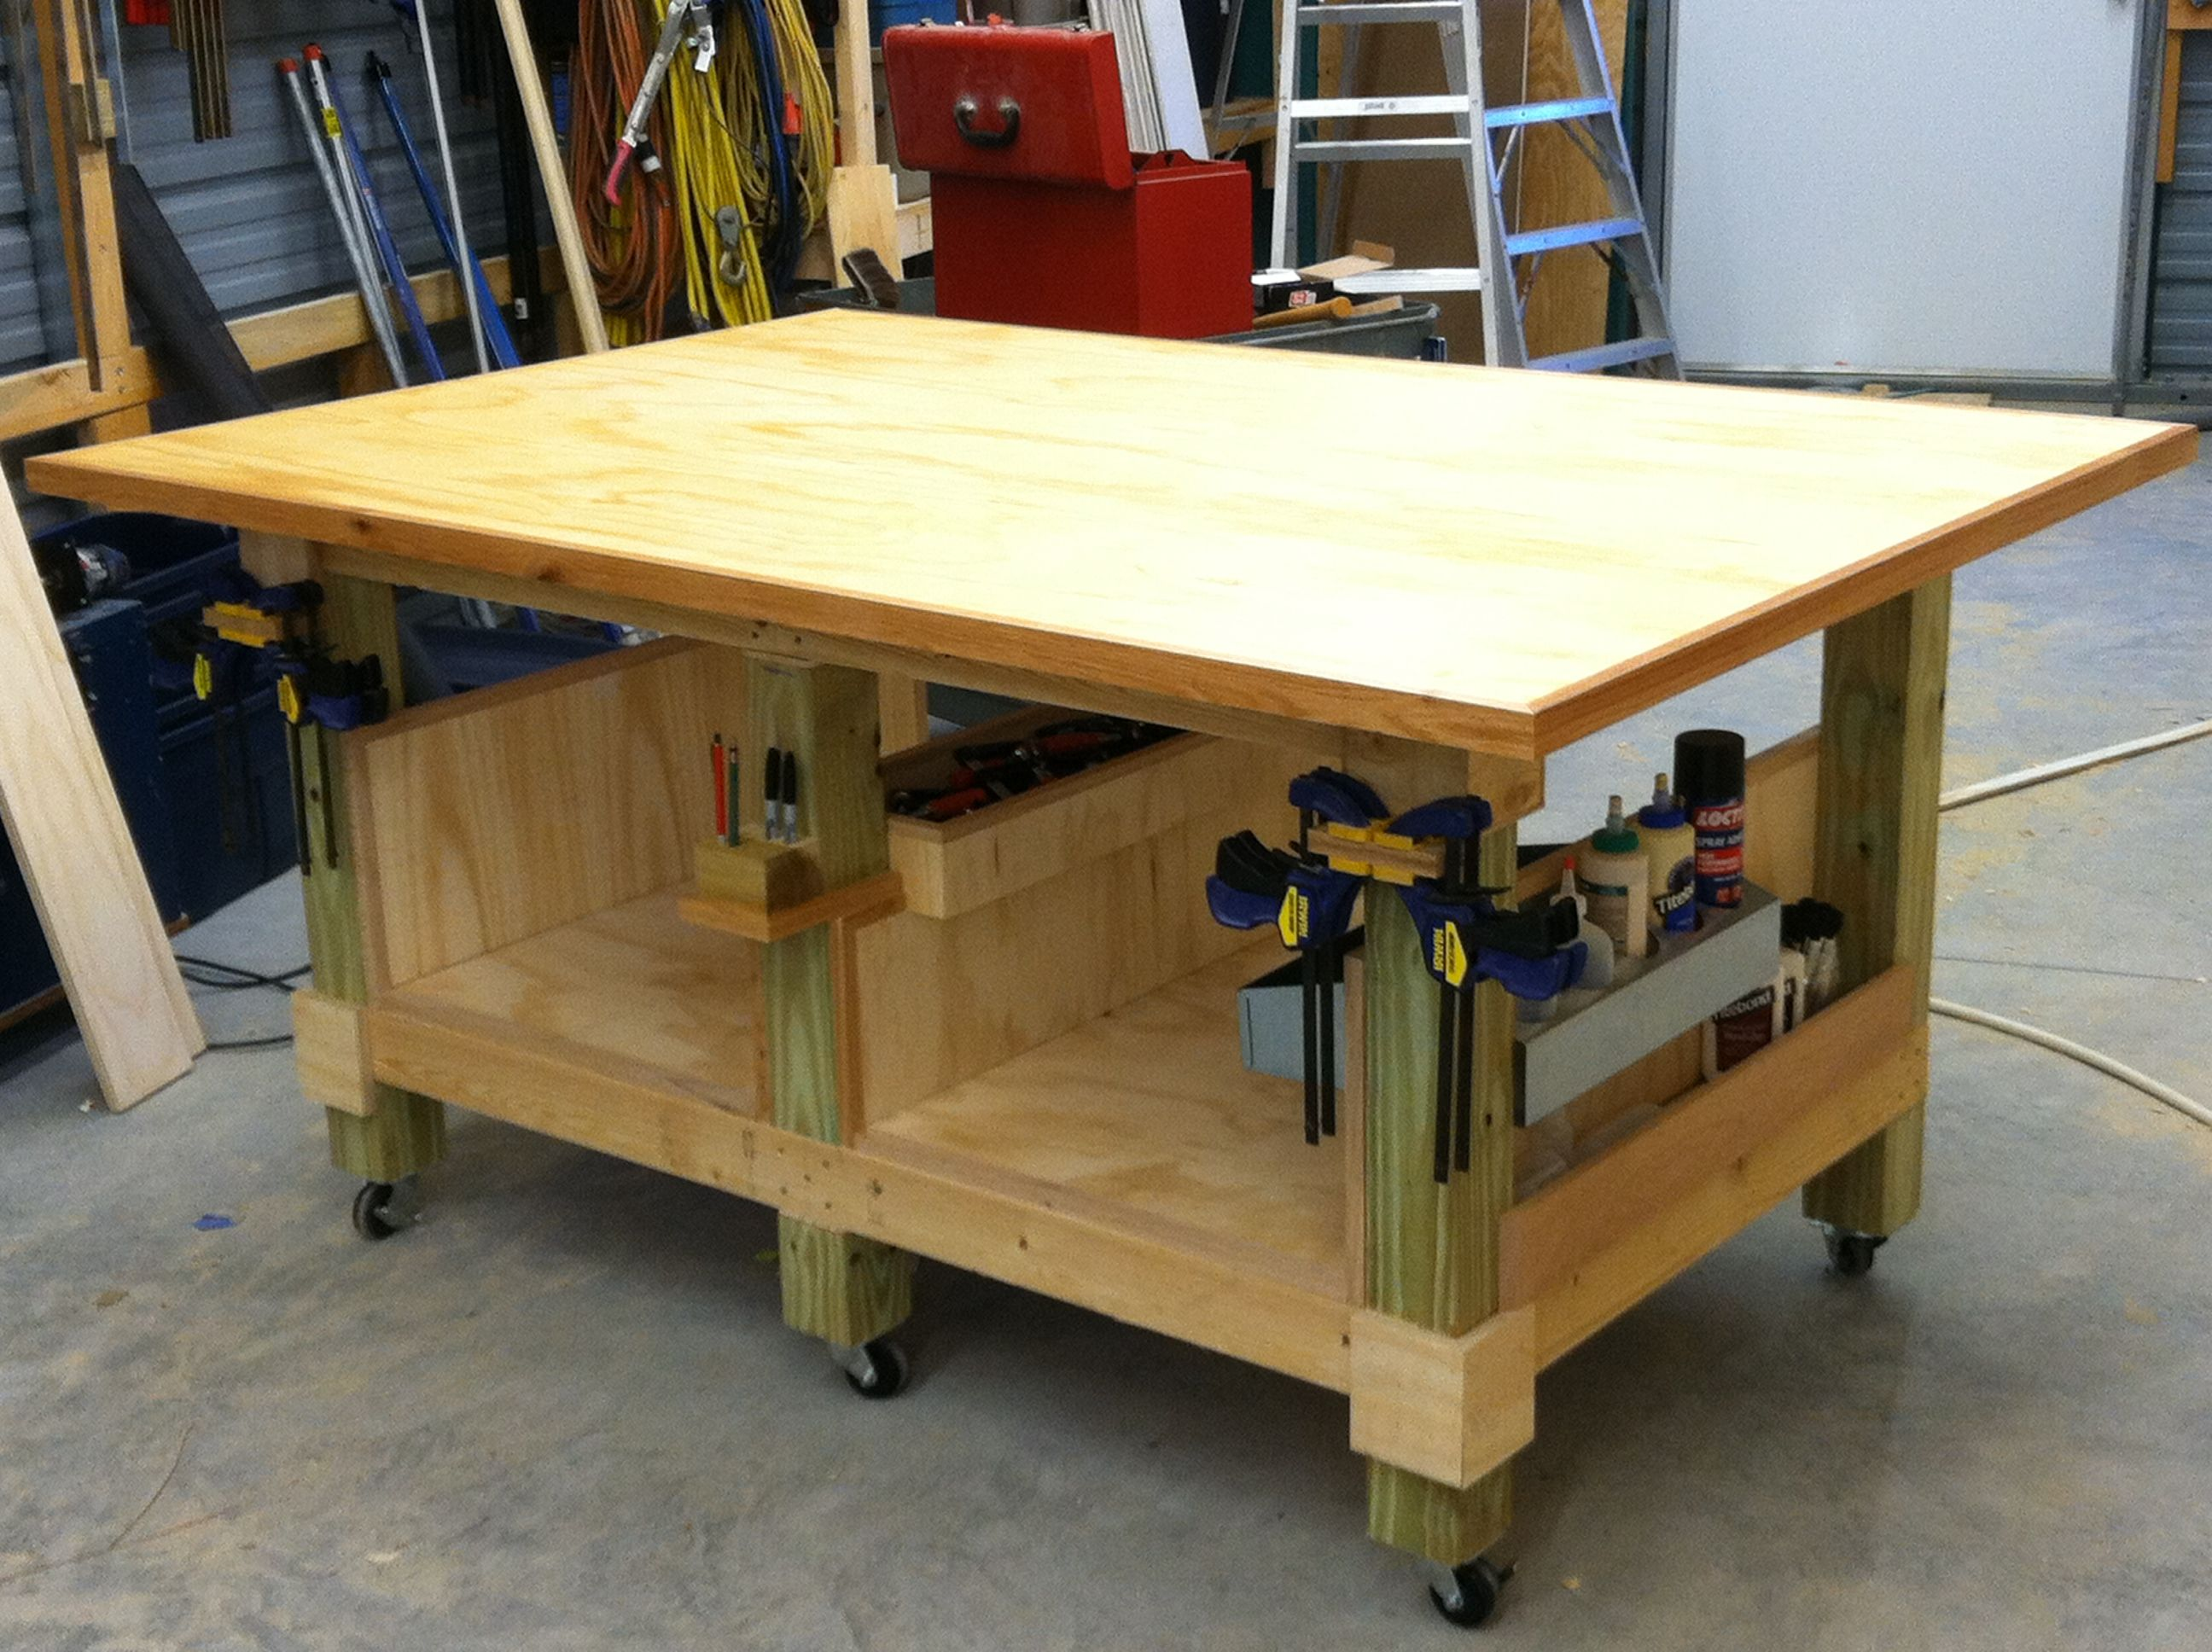 How to build a table base with 4 x 4 lumber - 4 X 6 Ft Woodworking Assembly Table Six Legs From 4 X 4 Posts Each With Locking Wheels Table Top Is Made From Two Sheets Of Inch Birch Plywood With Inch